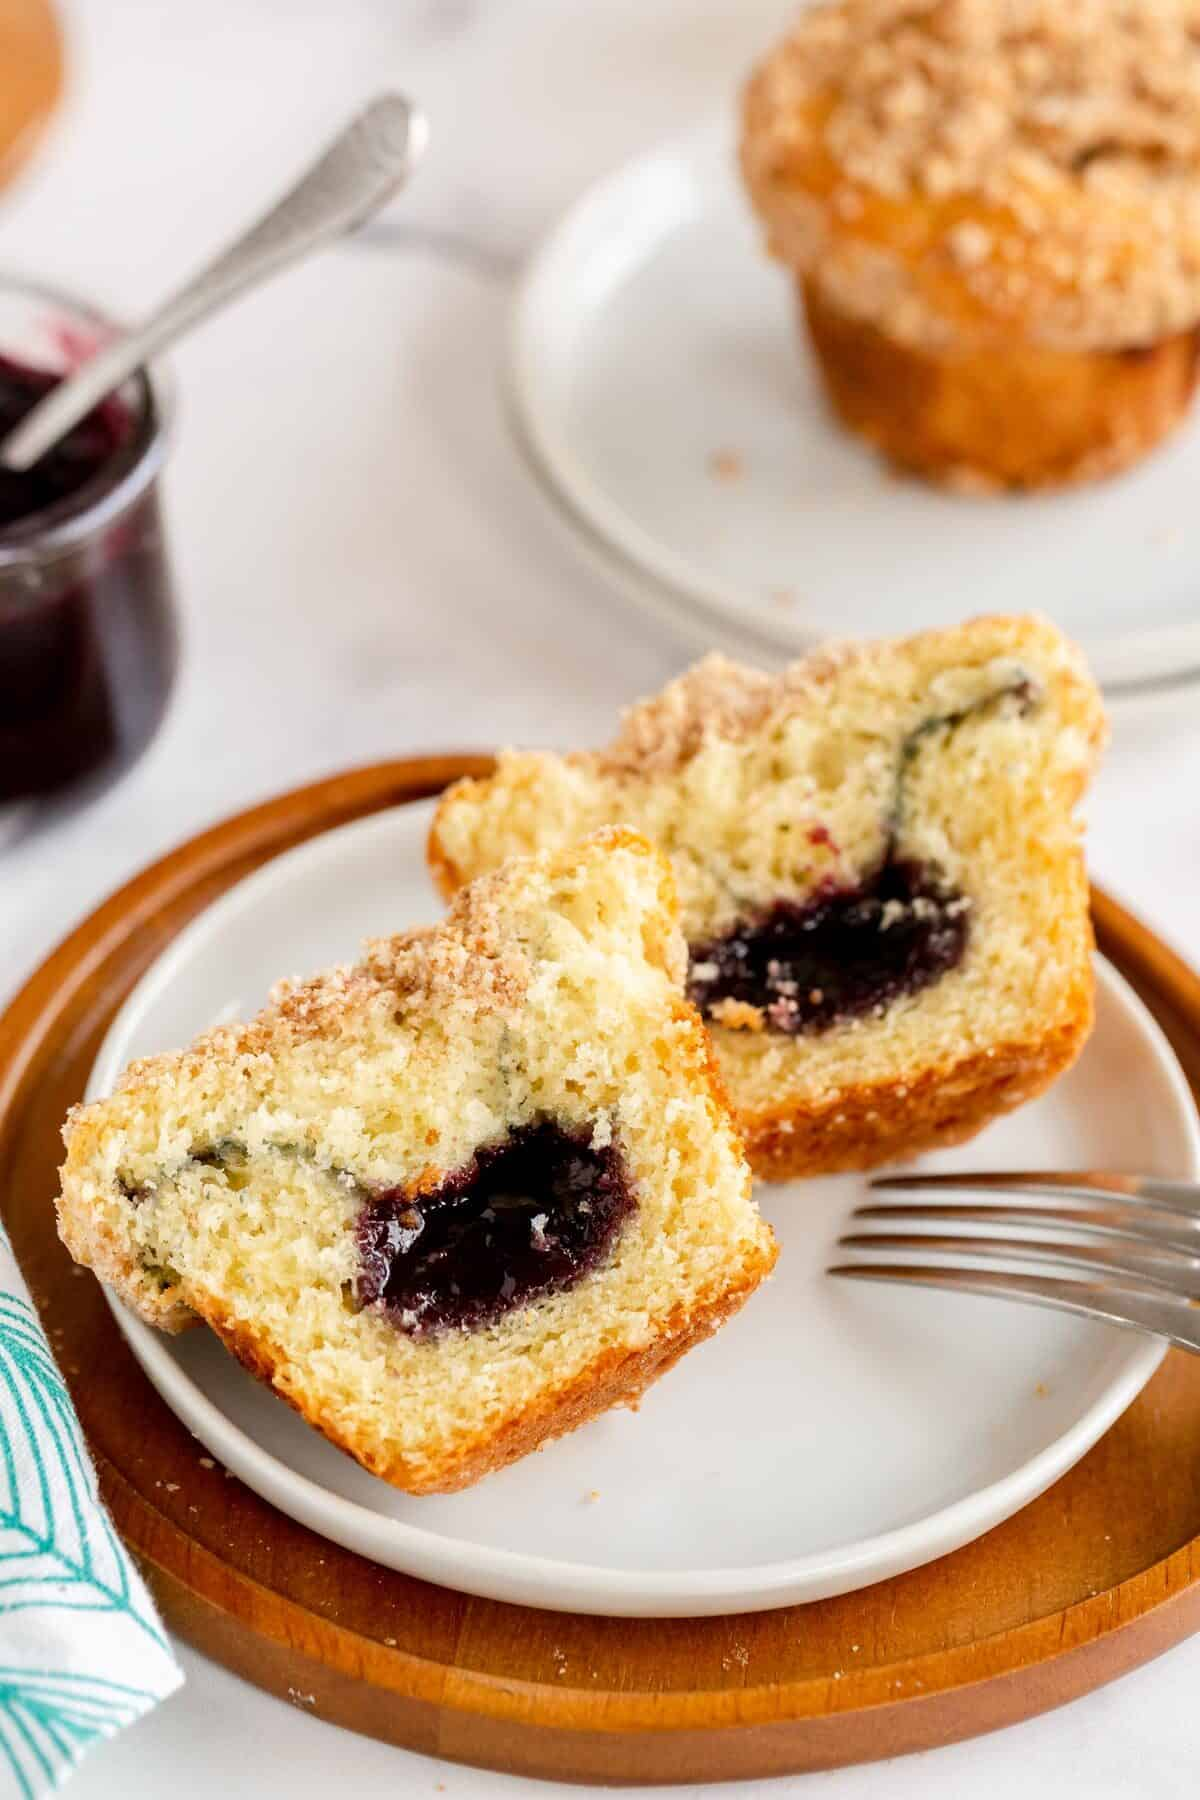 muffins with a jam center cut open